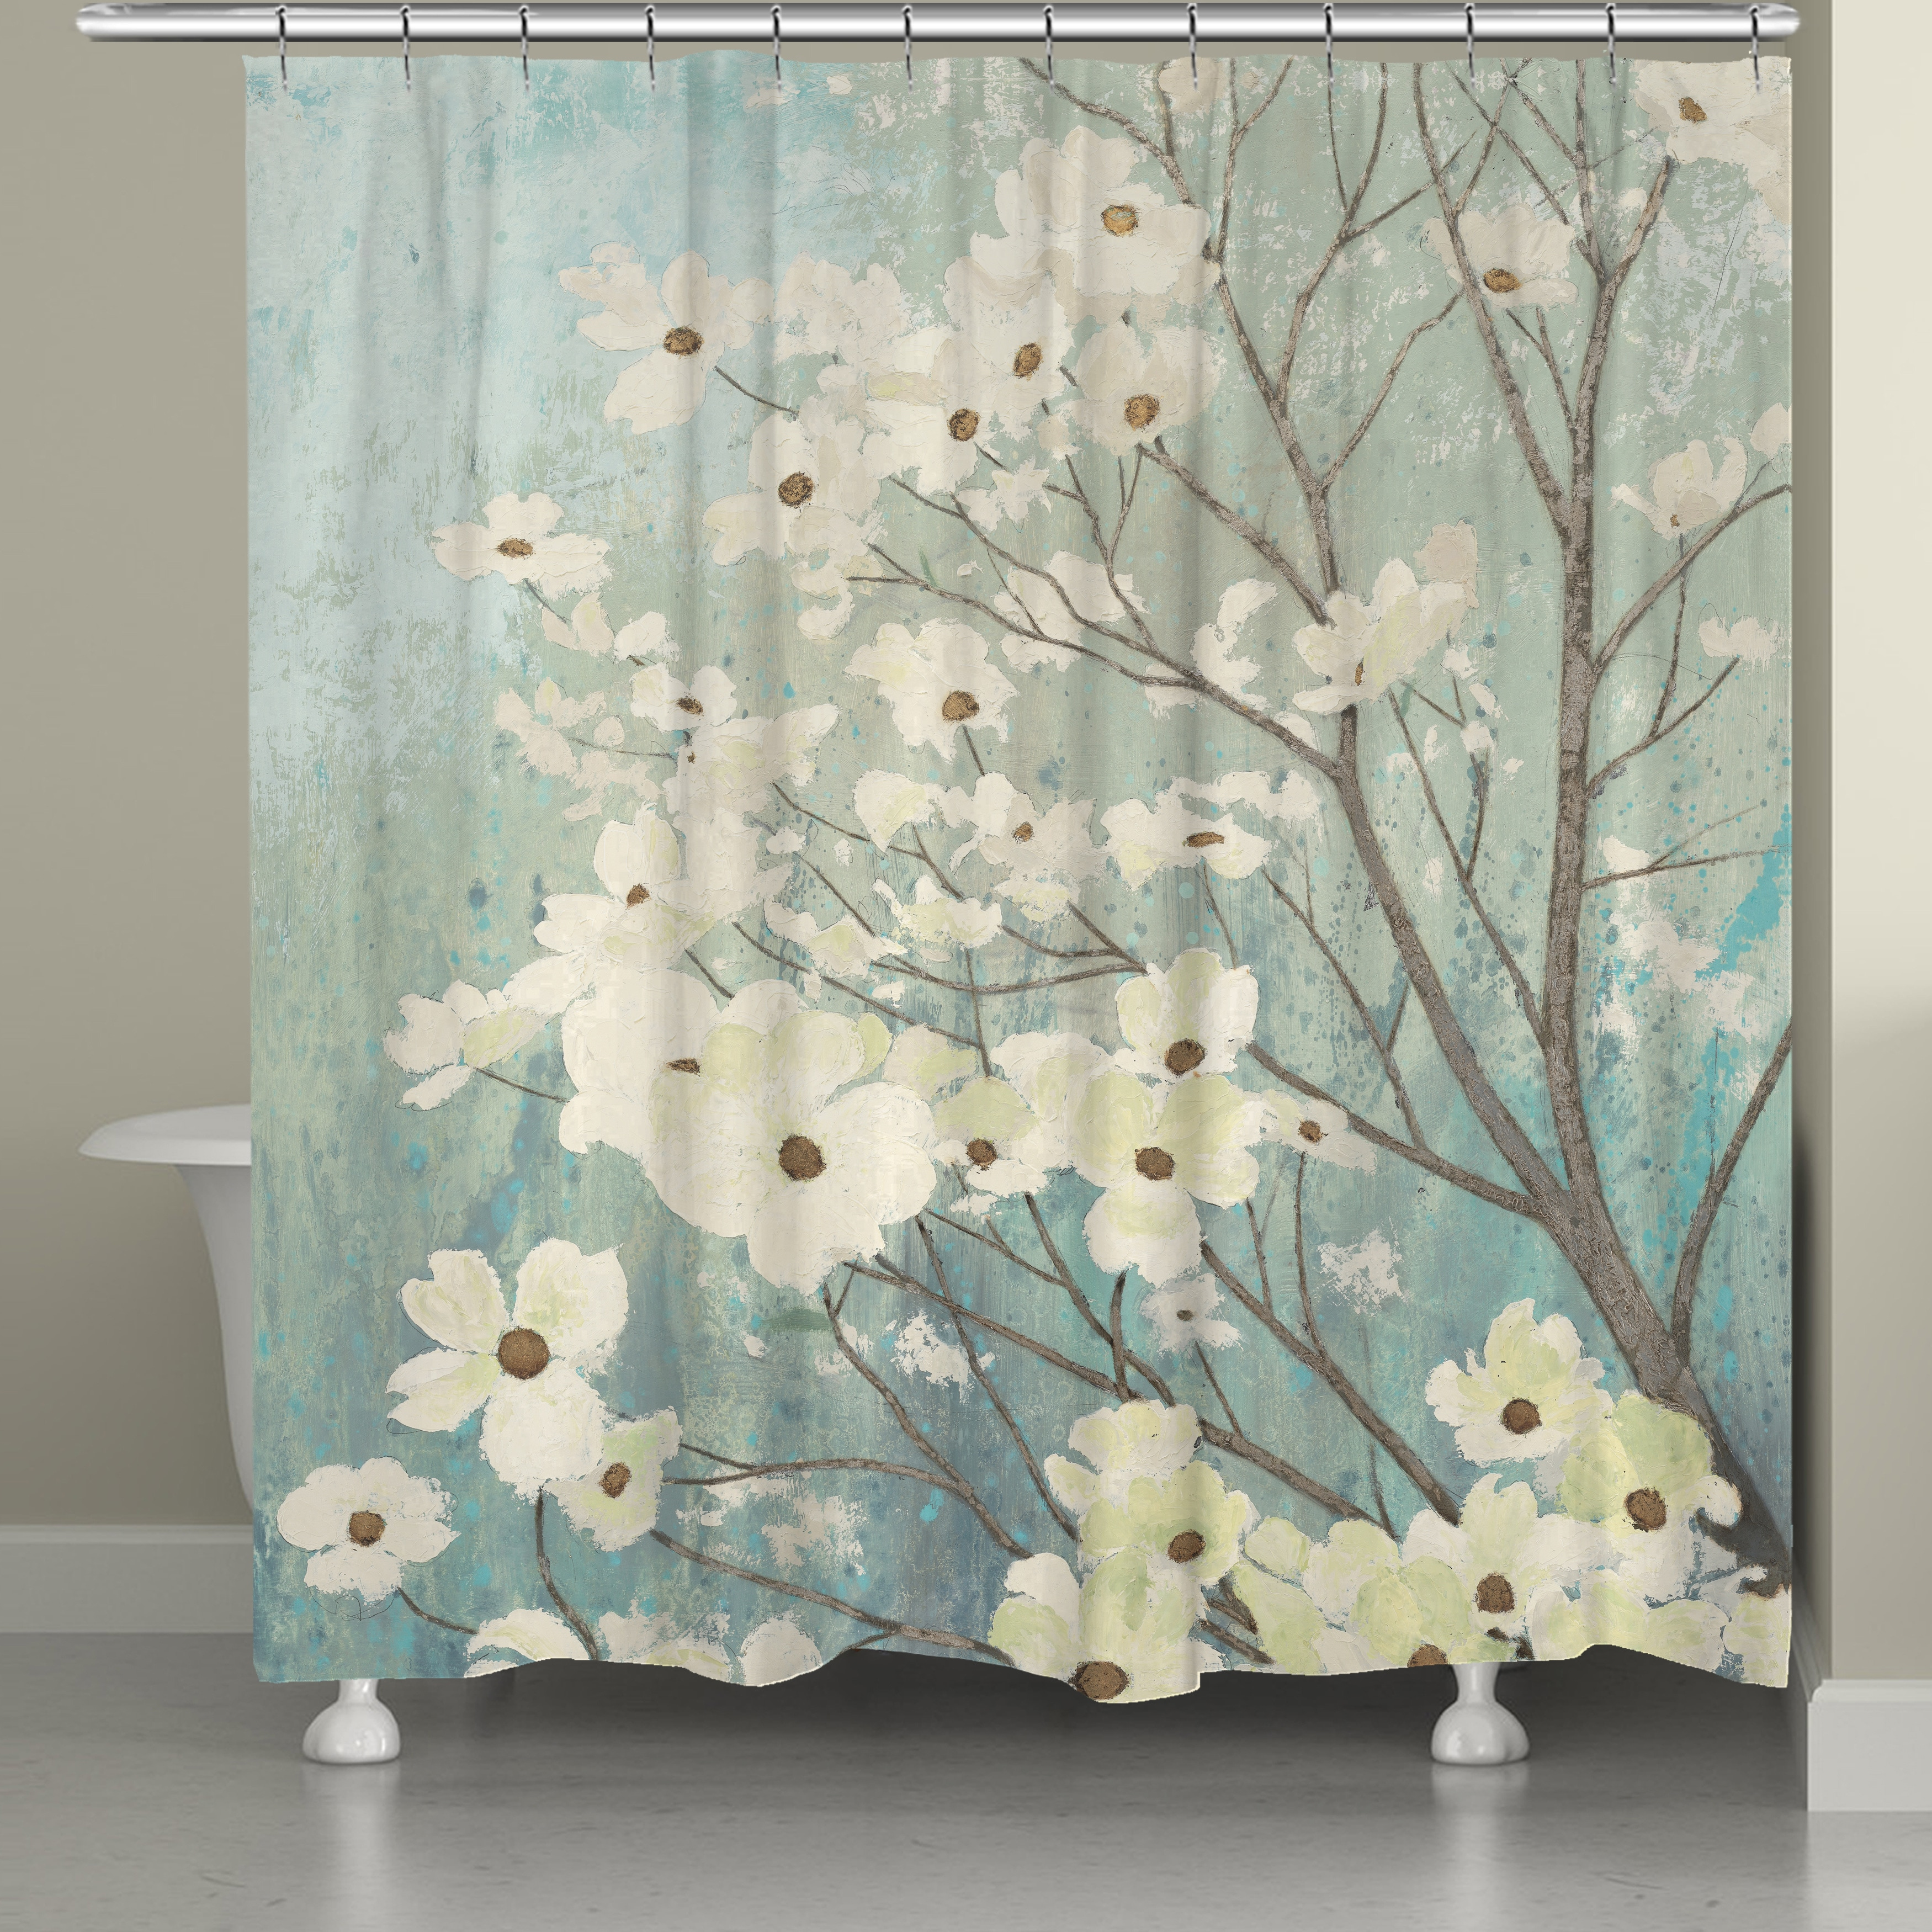 74 Shower Curtain Laural Home Flowering Dogwood Blossoms Shower Curtain 71 Inch X 74 Inch